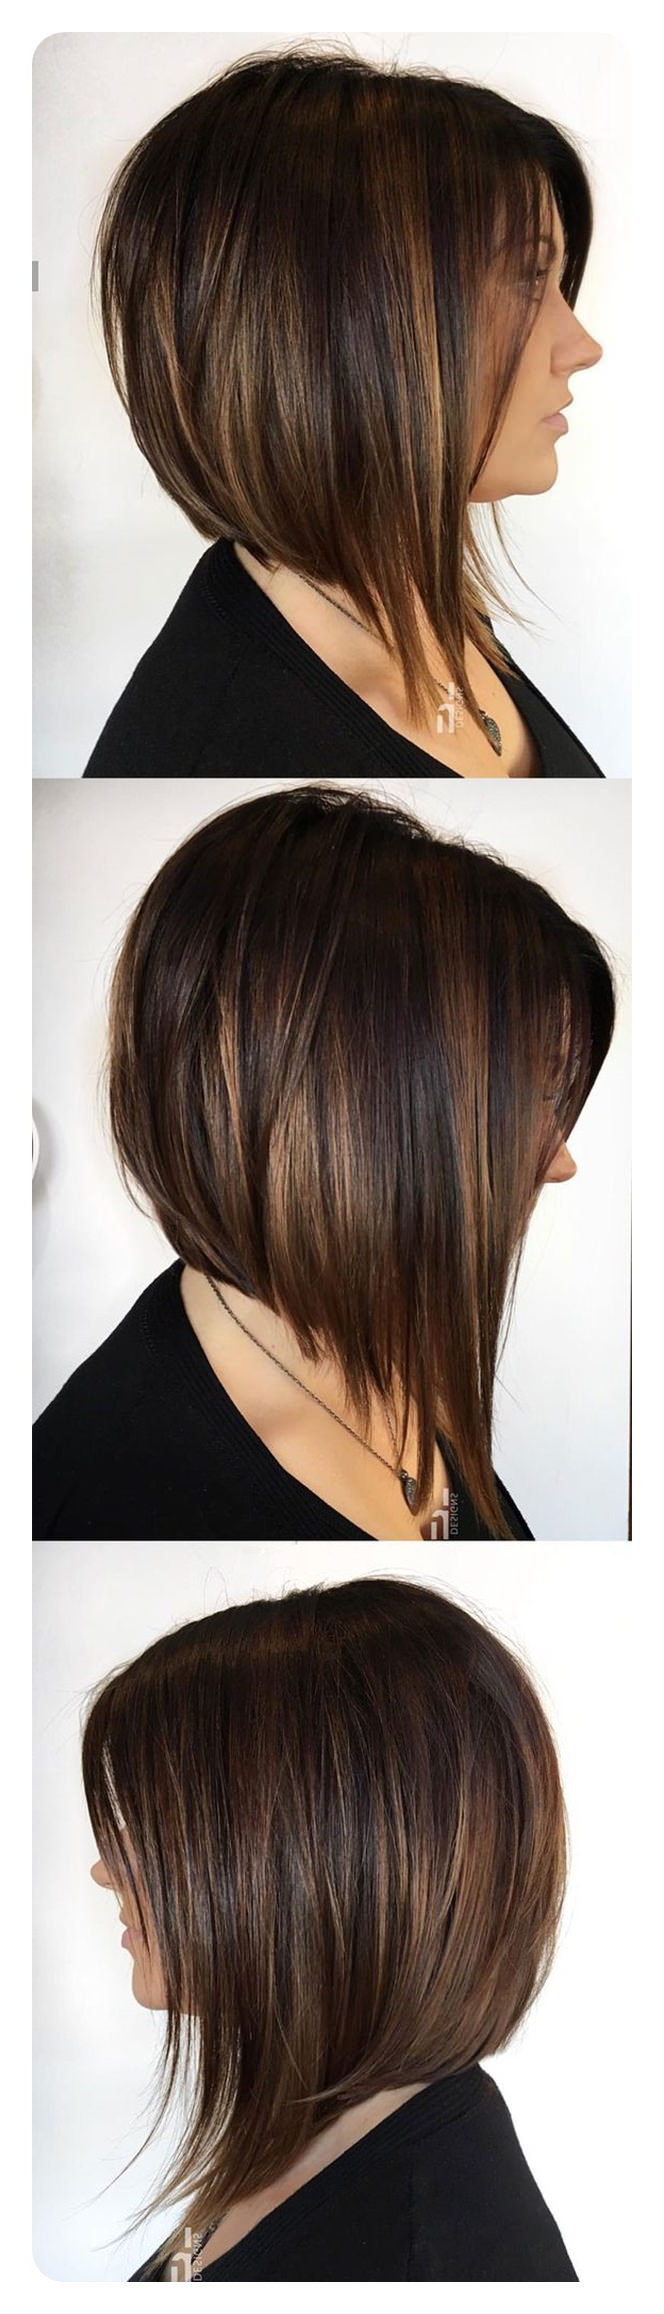 92 Layered Inverted Bob Hairstyles That You Should Try Regarding Best And Newest Round Bob Hairstyles With Front Bang (View 7 of 20)